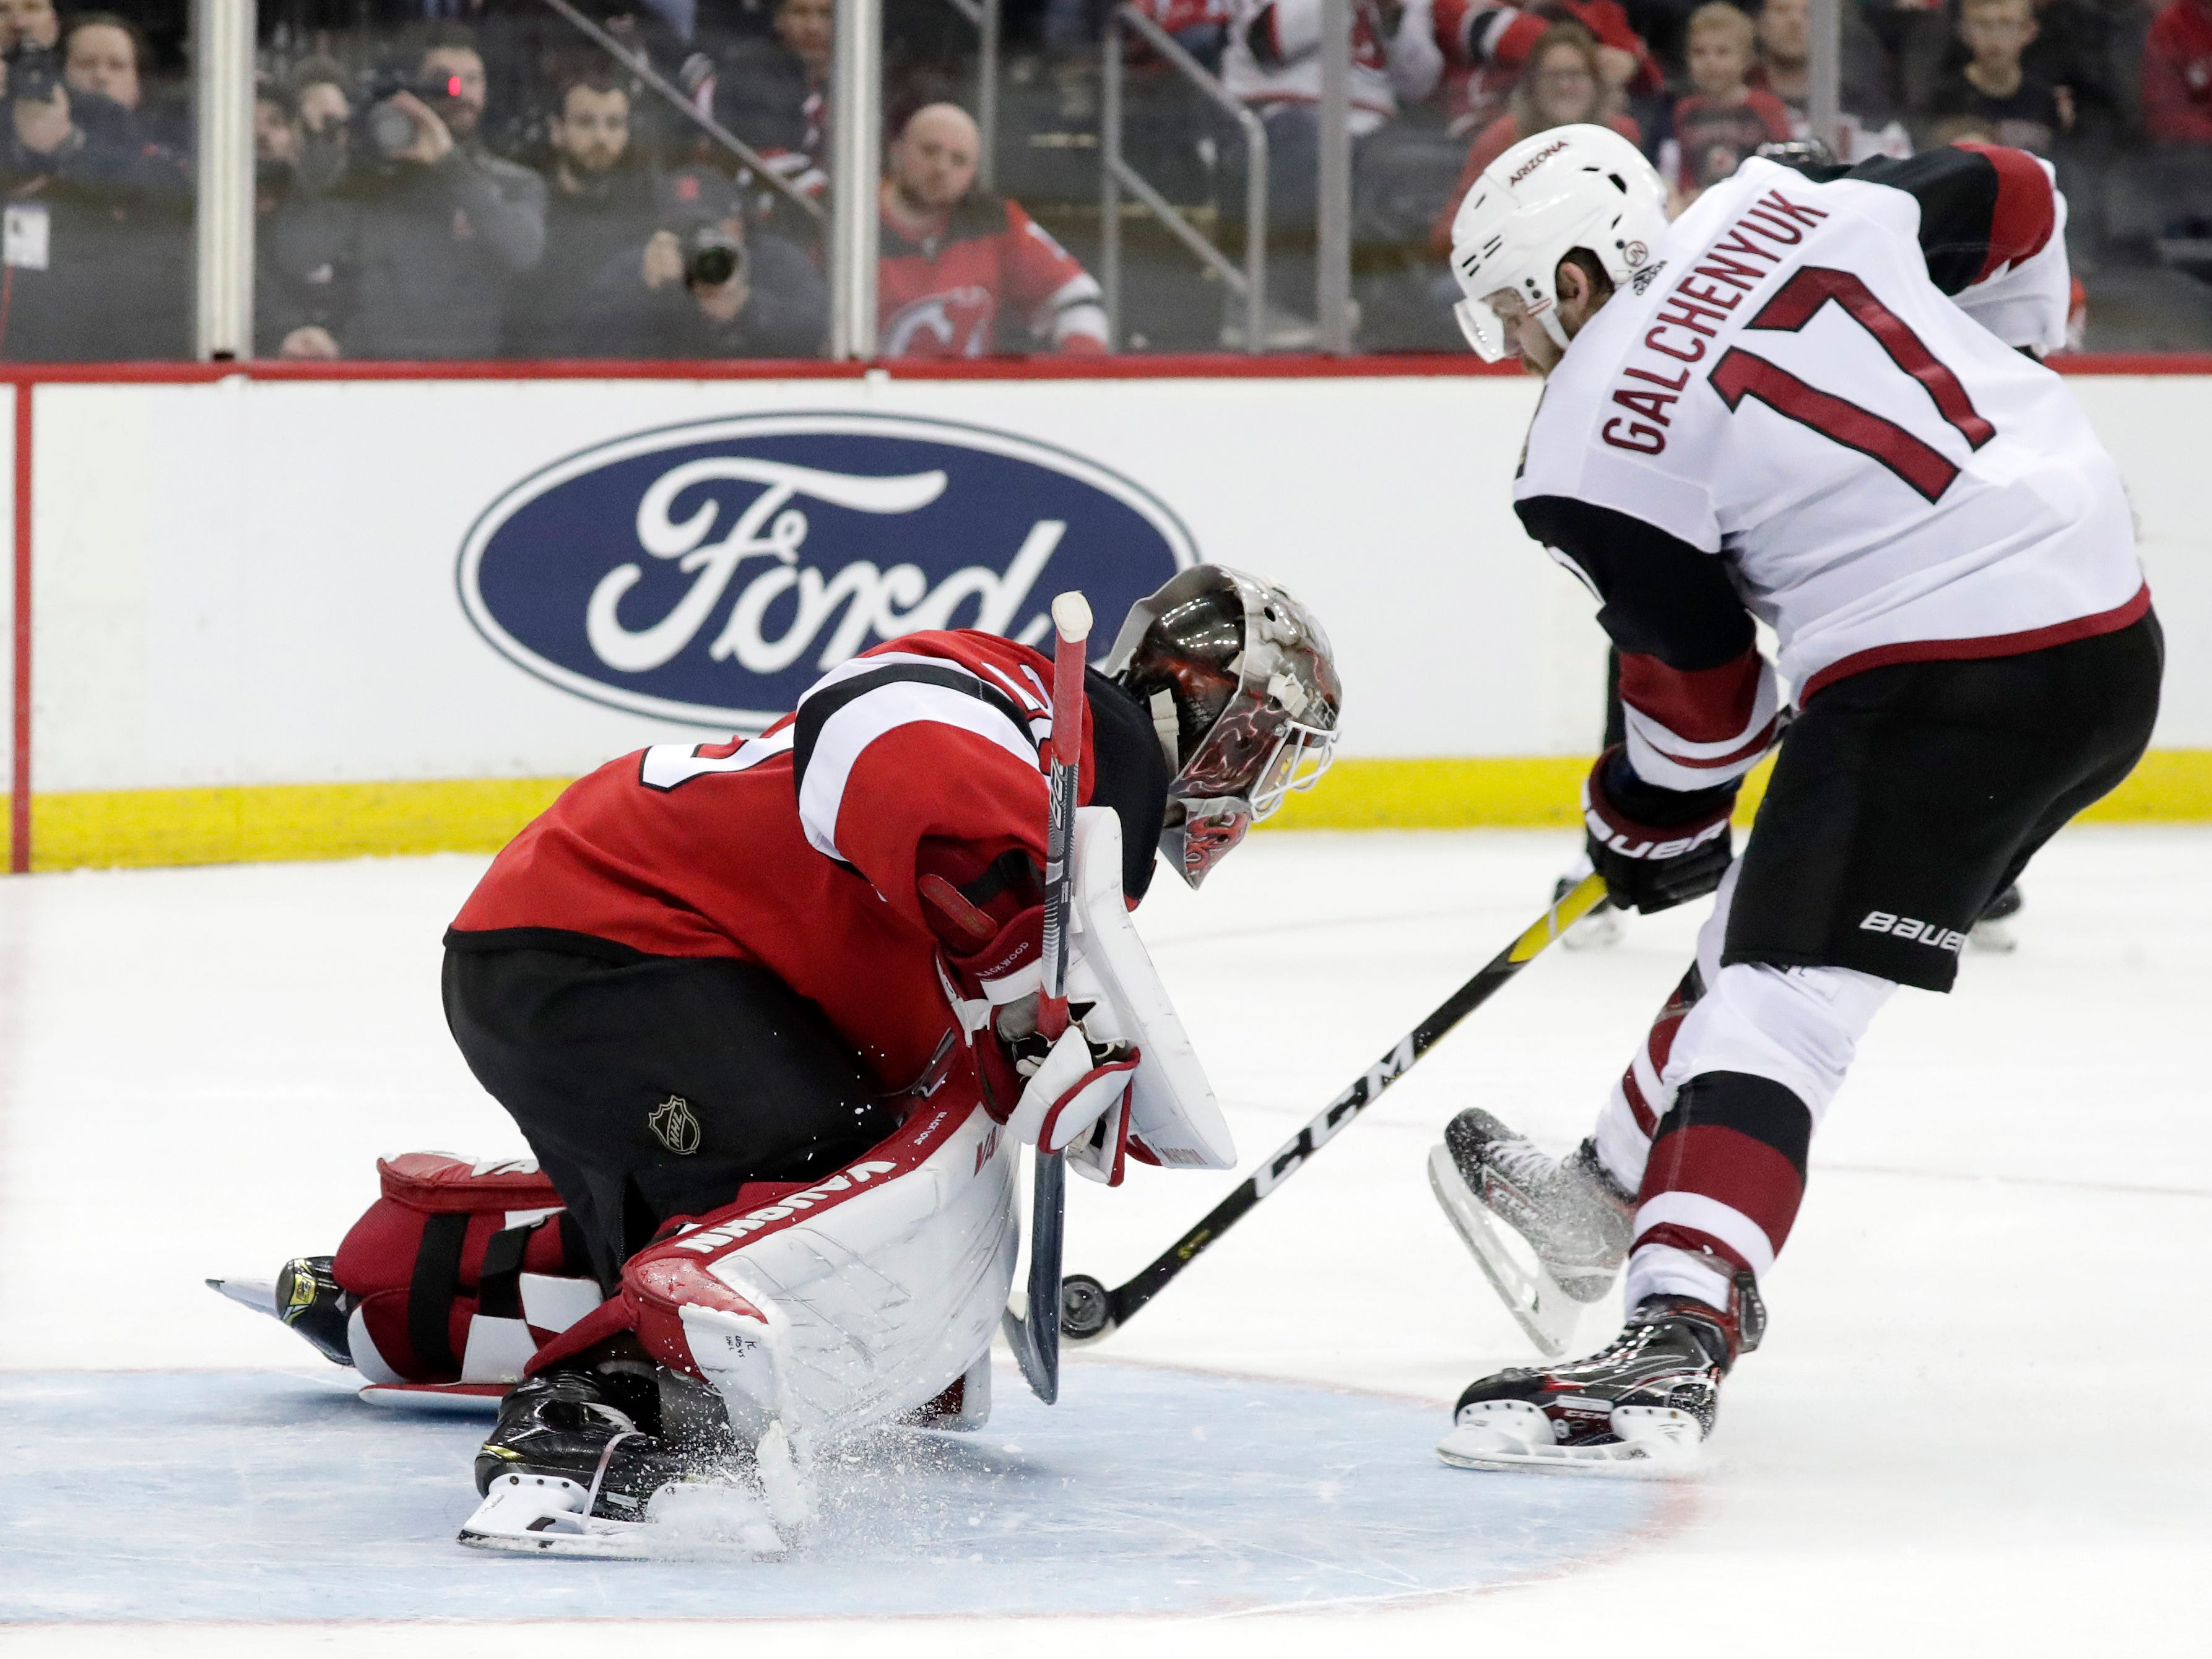 New Jersey Devils goaltender MacKenzie Blackwood, left, blocks a shootout shot by Arizona Coyotes center Alex Galchenyuk (17) during an NHL hockey game, Saturday, March 23, 2019, in Newark, N.J. The Devils on 2-1 in a shootout.